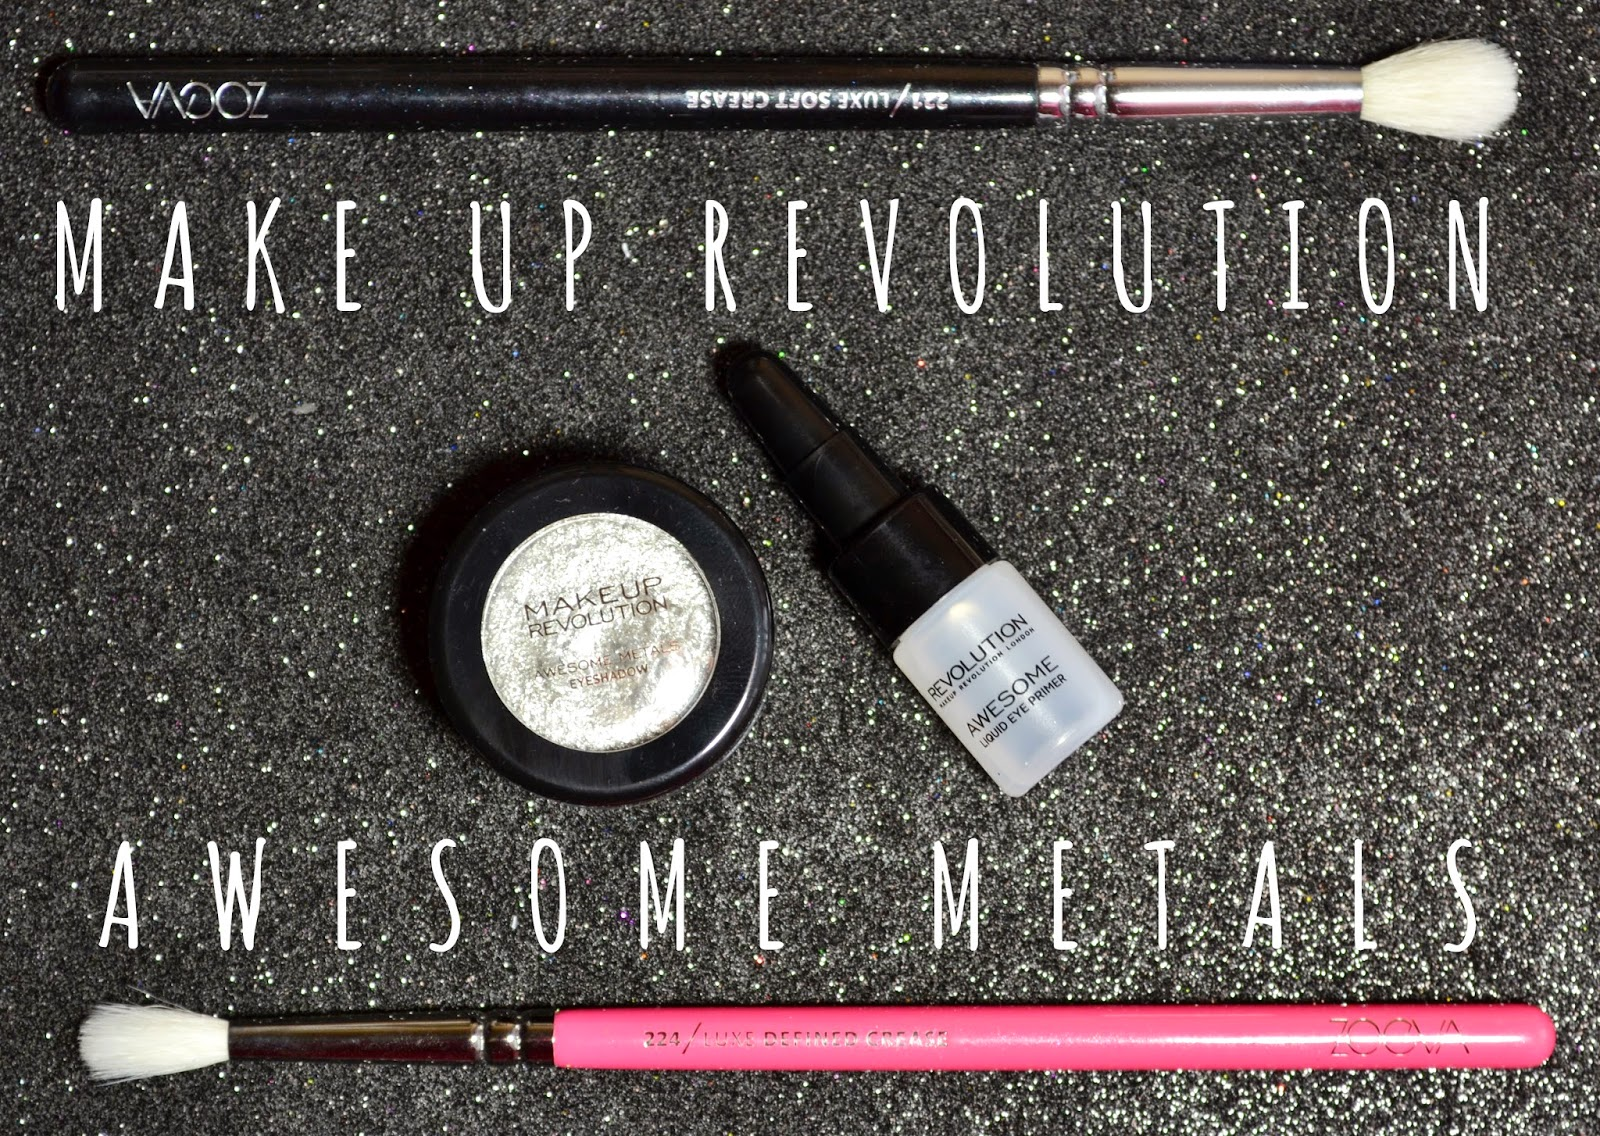 makeup revolution awesome metals